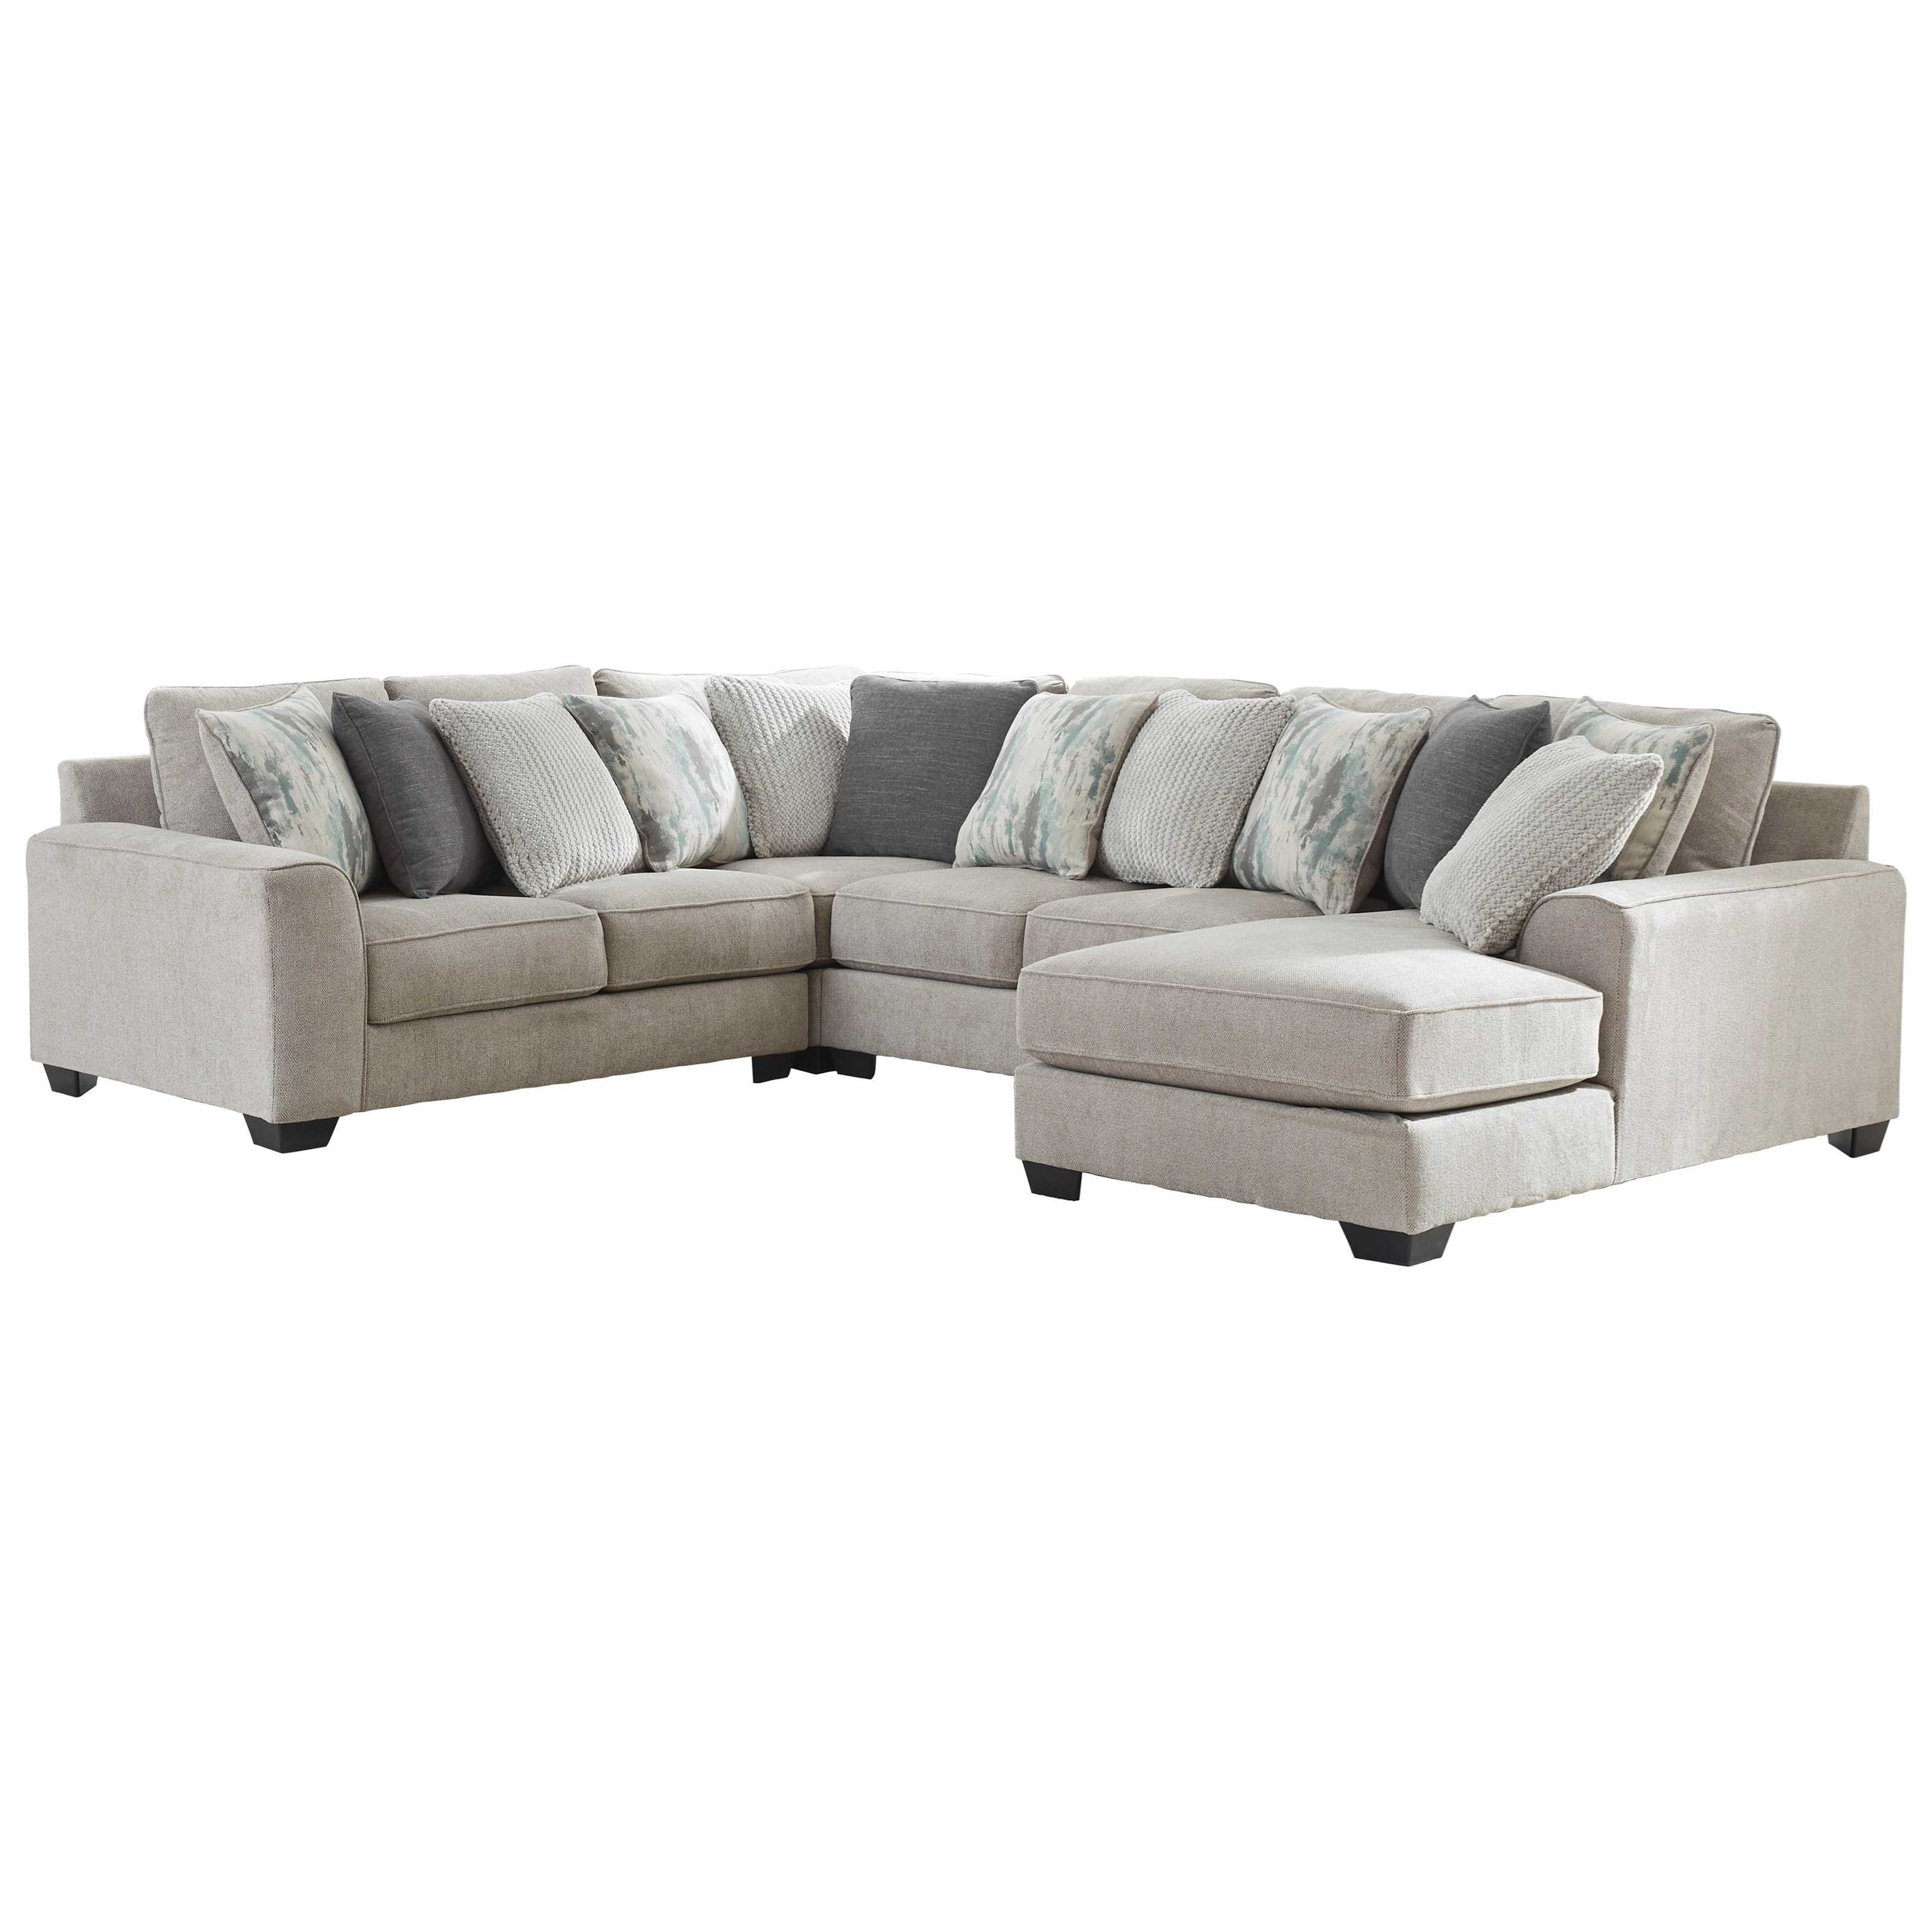 Ardsley 4-Piece Sectional with Right Chaise by Benchcraft at Fisher Home Furnishings